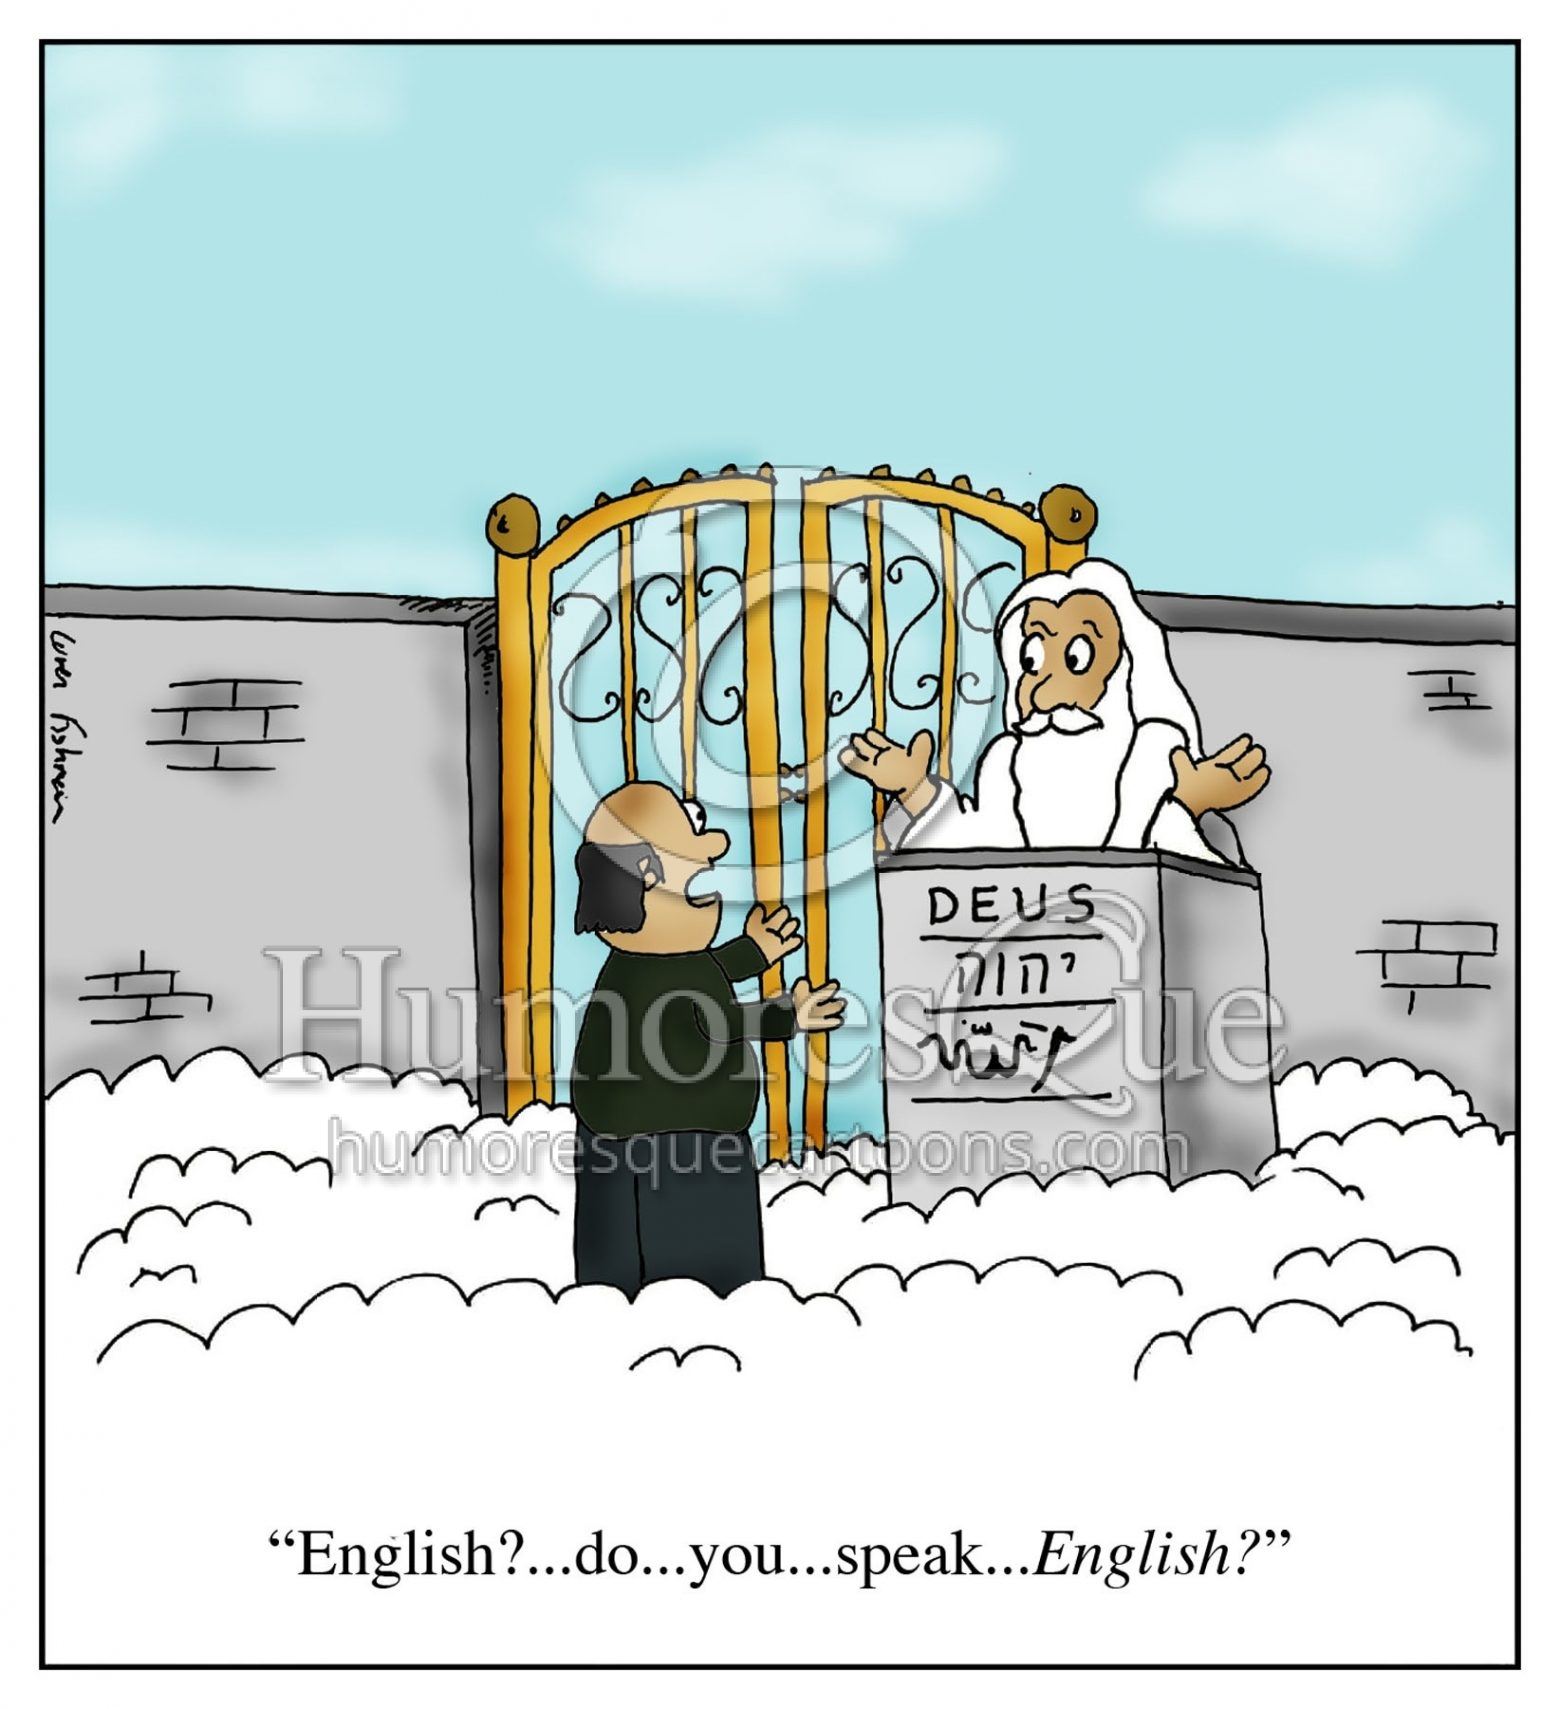 american goes to heaven and wants to speak english